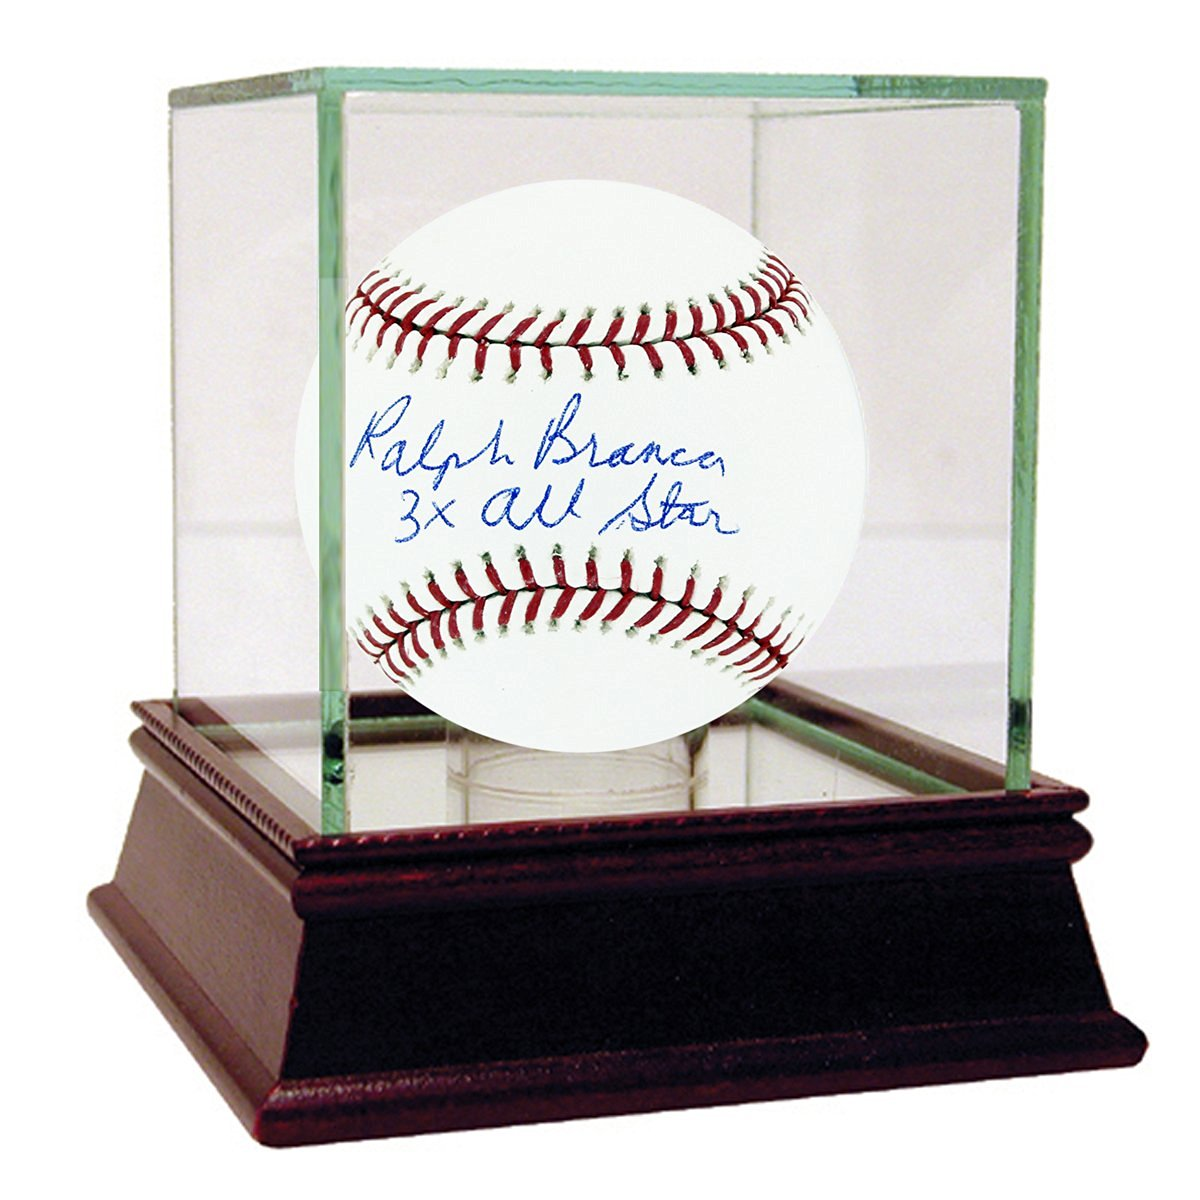 MLB Brooklyn Dodgers Ralph Branca Signed Baseball with 3x All Star Inscribed